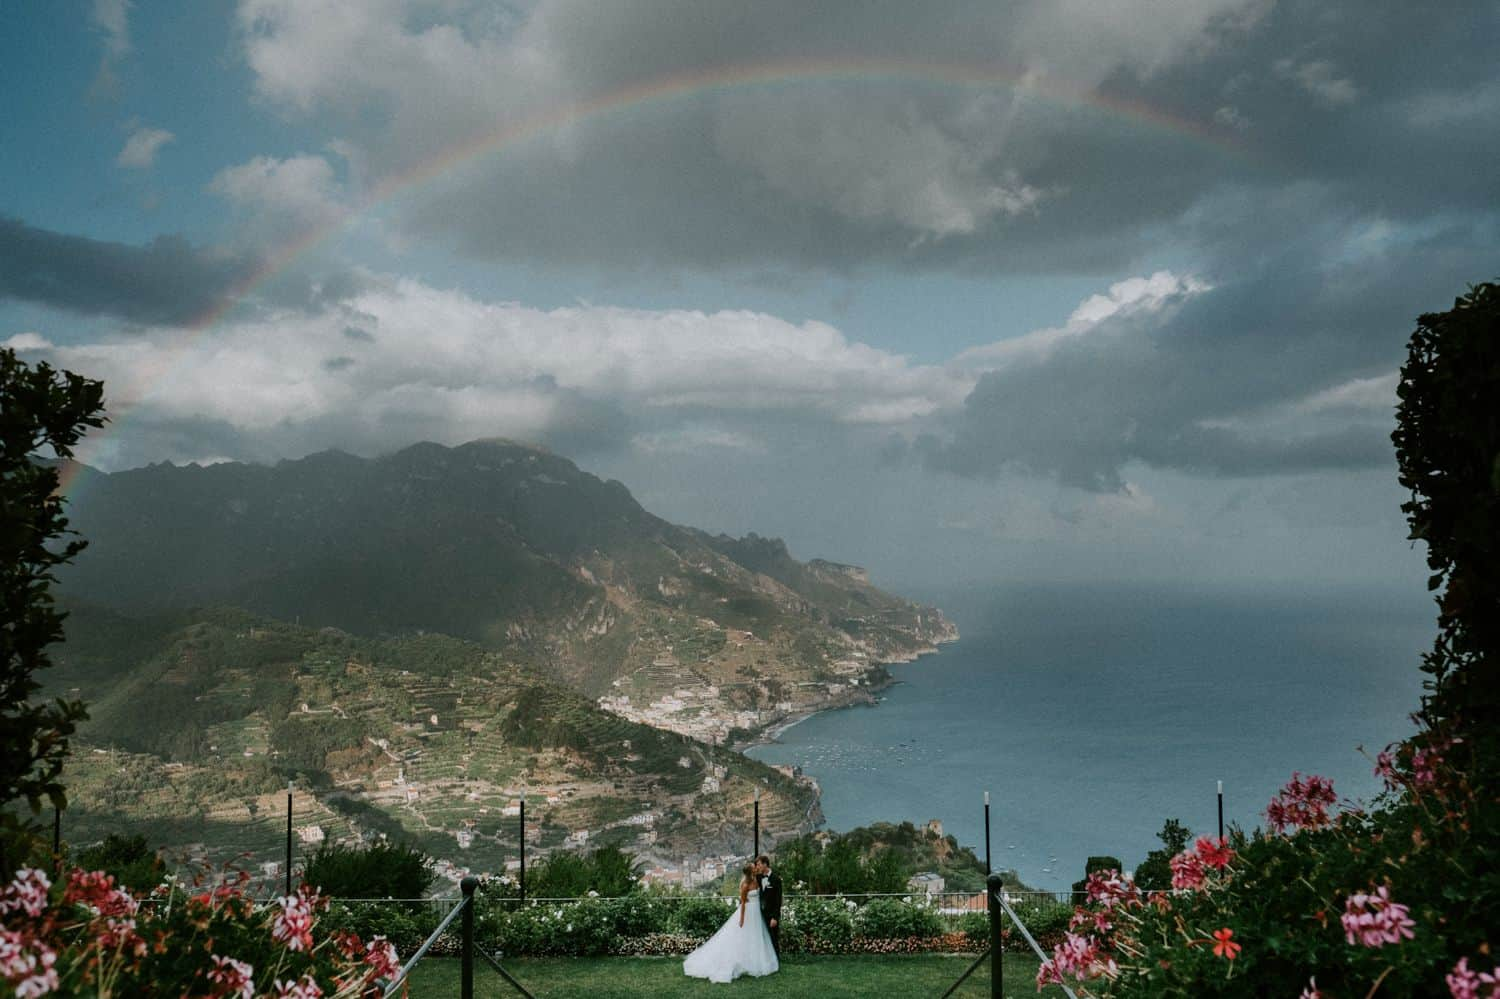 Van Middleton: Bride and groom stand under a seaside rainbow.